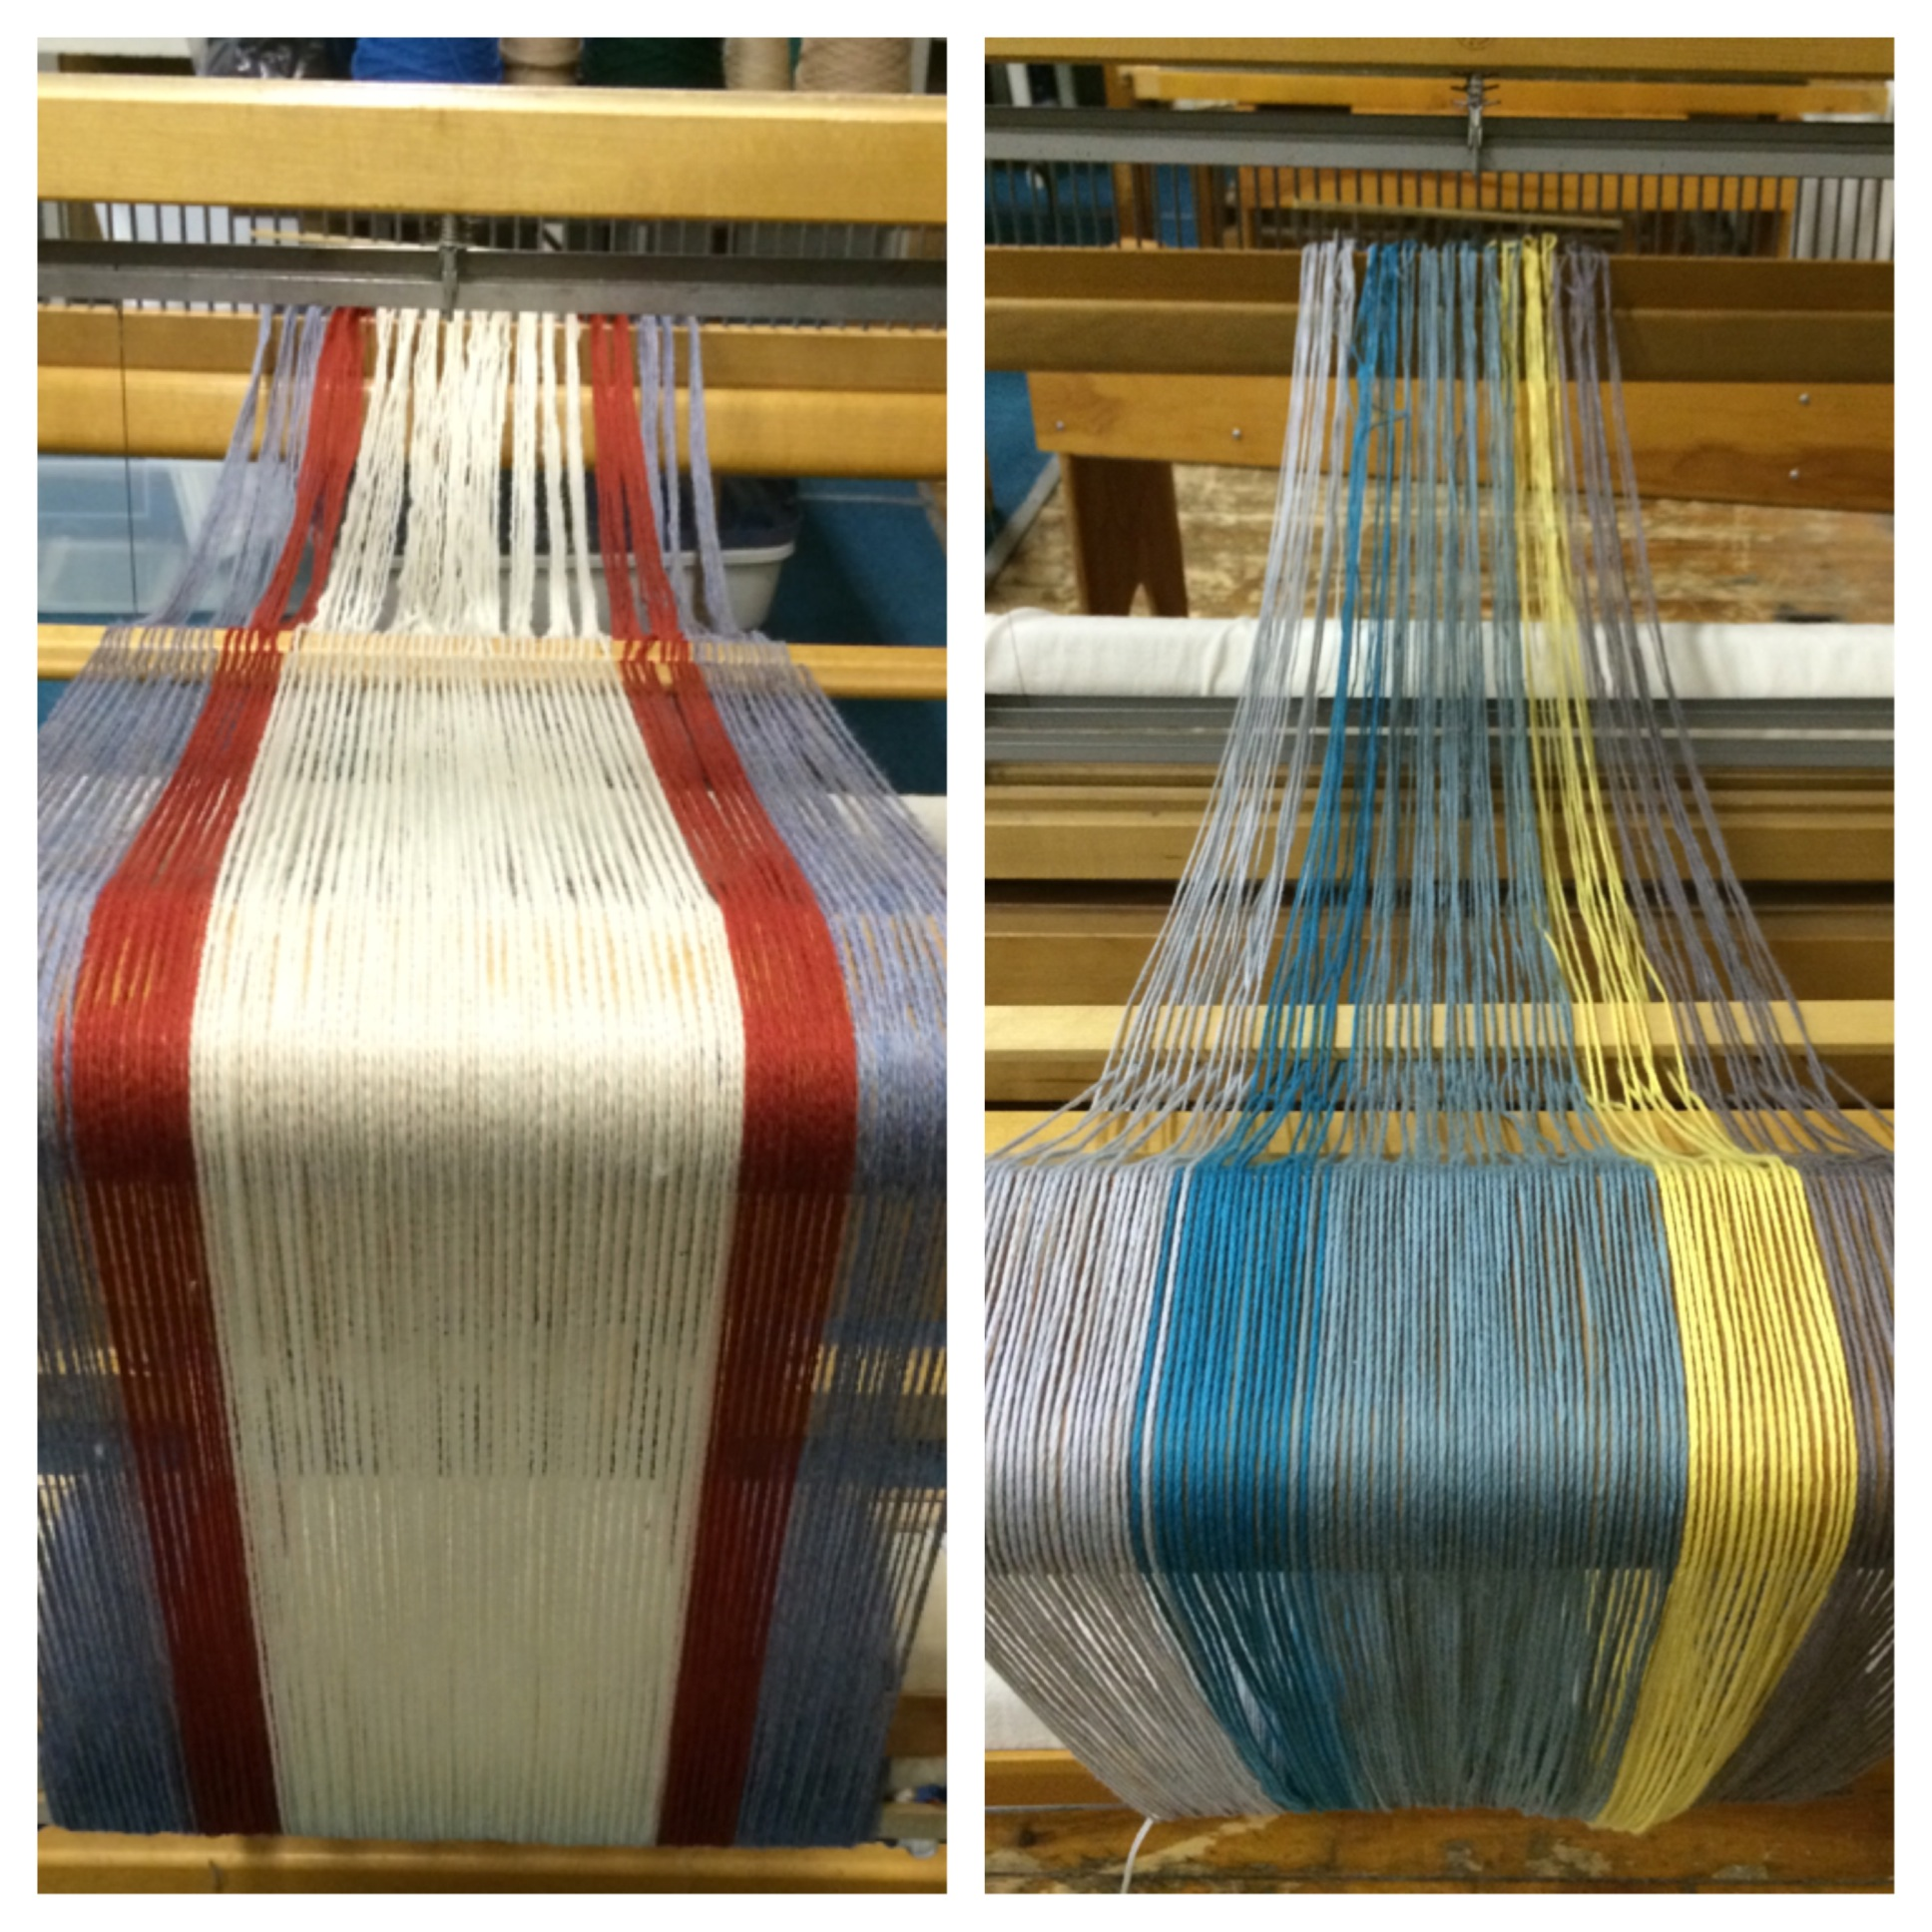 Putting everything on the loom - end of day 1